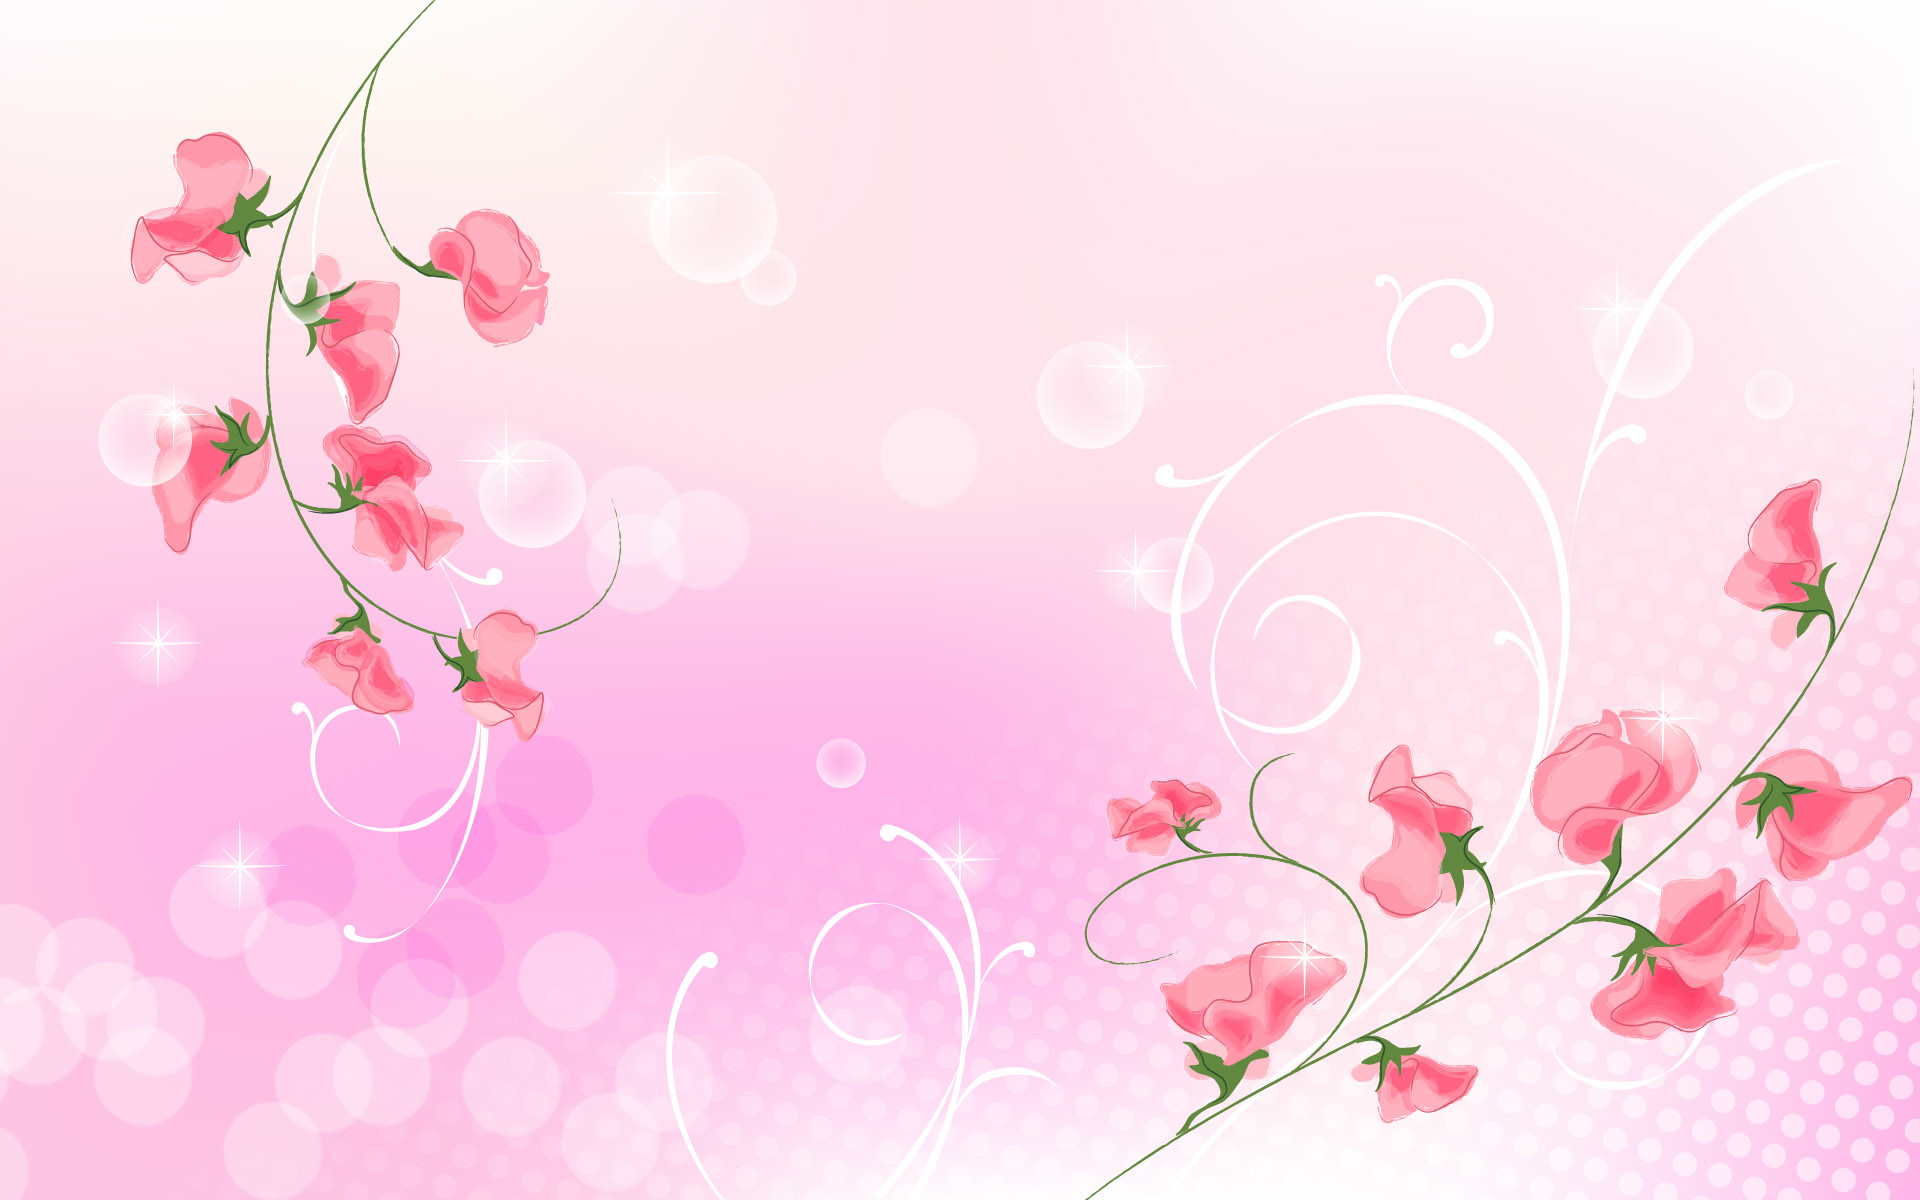 1920x1080 Girly Wallpapers Pink Backgrounds Hd Cool Images High Definition Tablet Background Colourful Widescreen Digital Photos